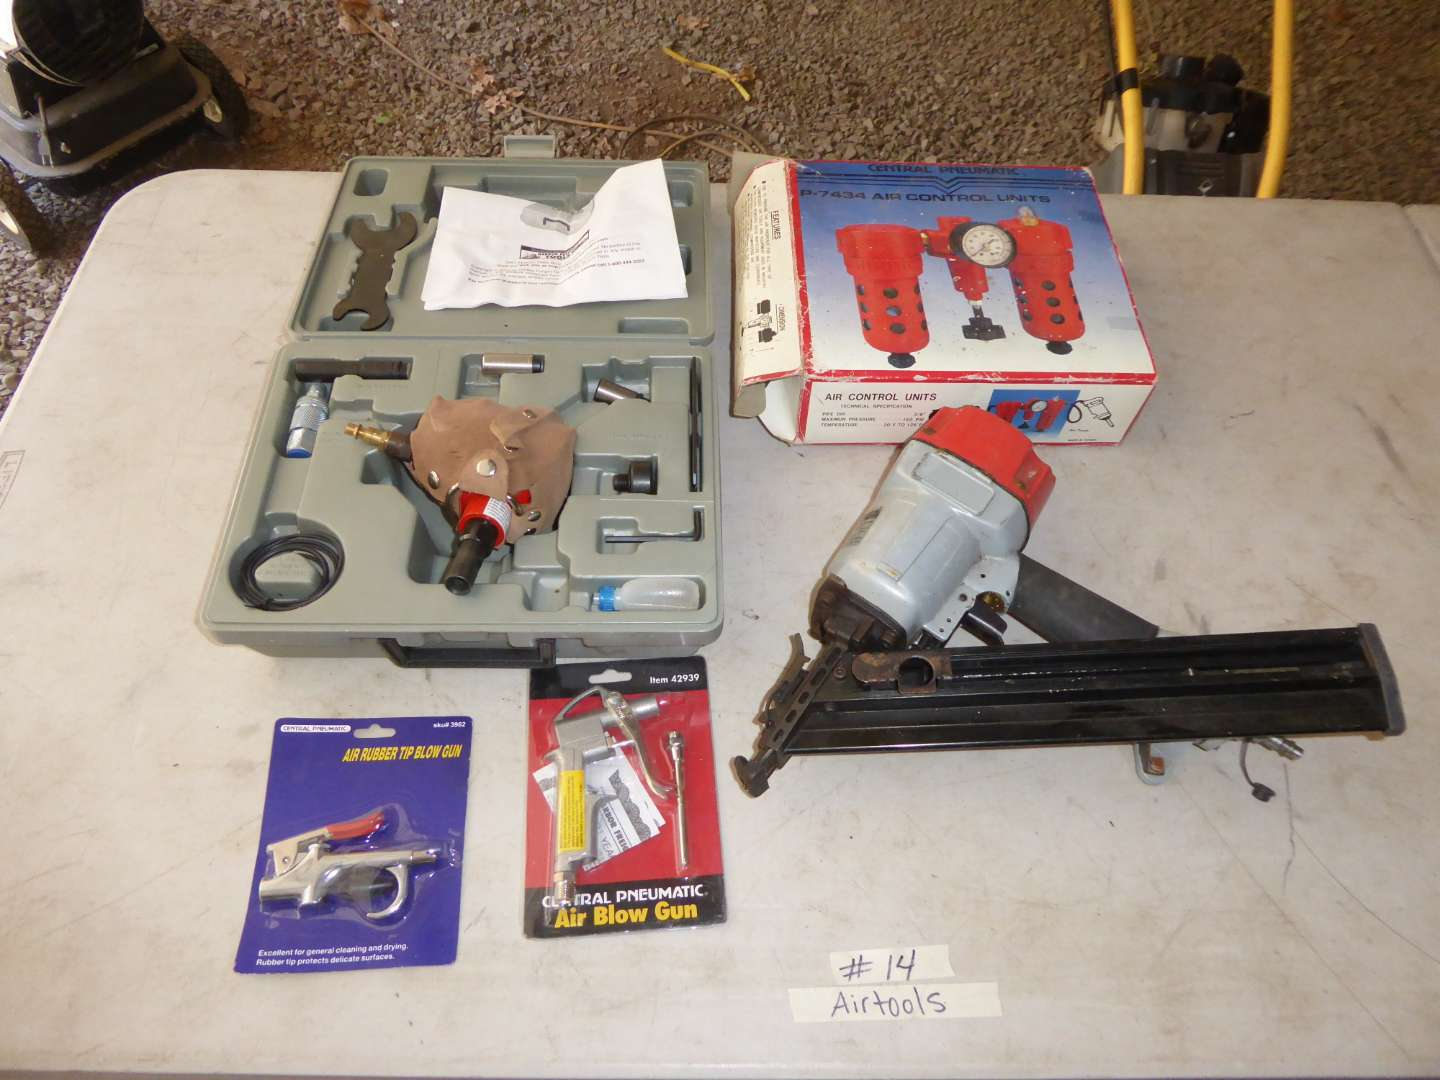 Lot # 14 - Air Hand Nailer Kit, Air Control Units & Air Blow Gun (main image)